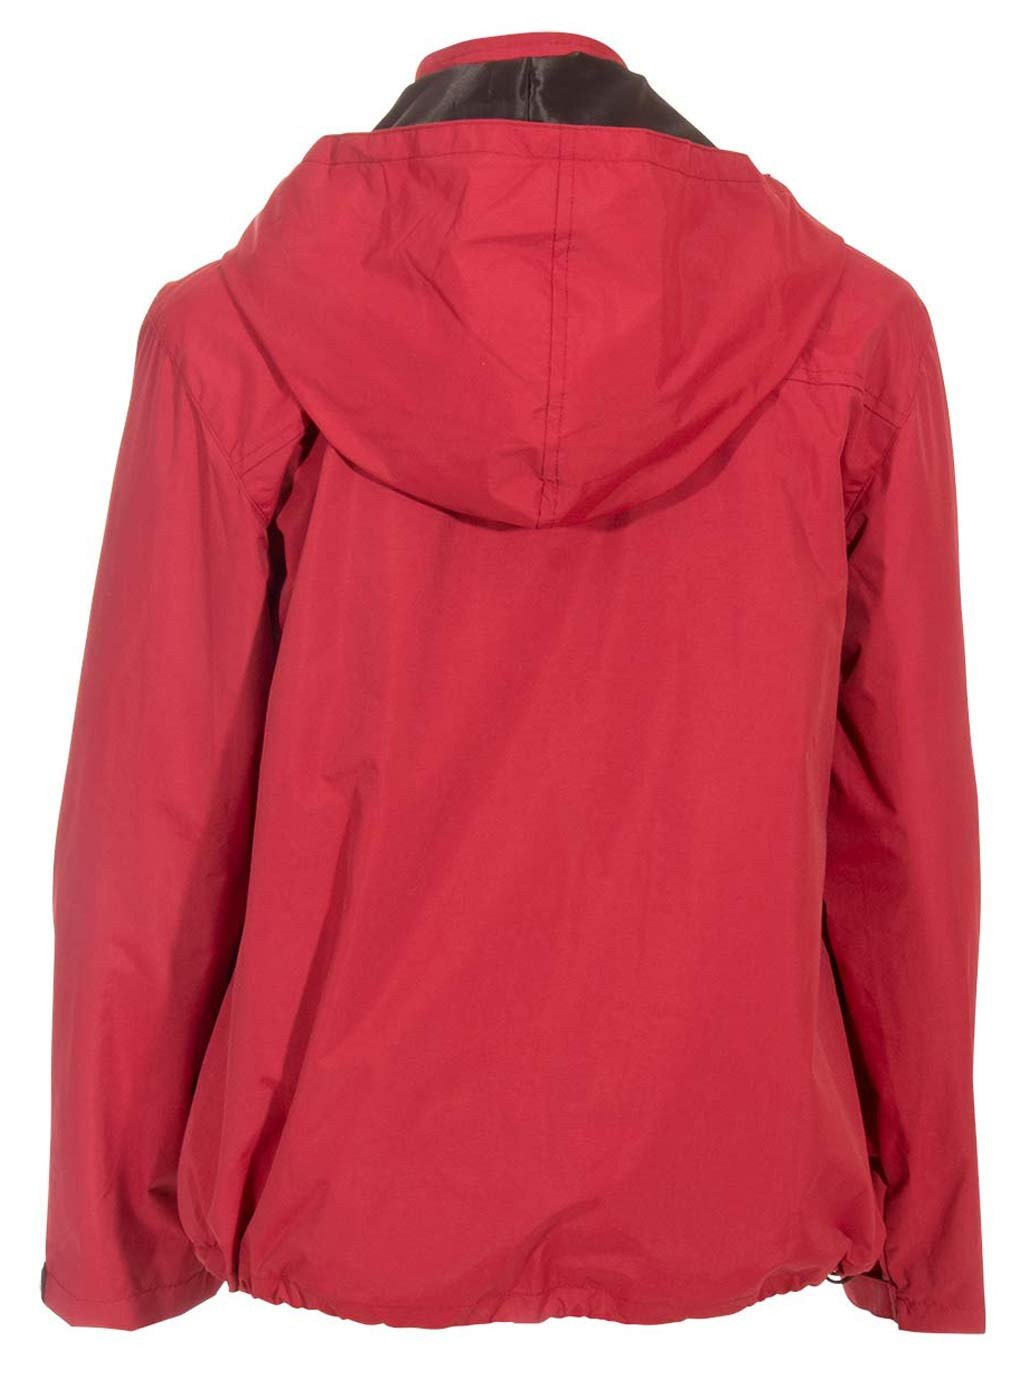 Red Womens Travel Jacket | Global Travel Clothing